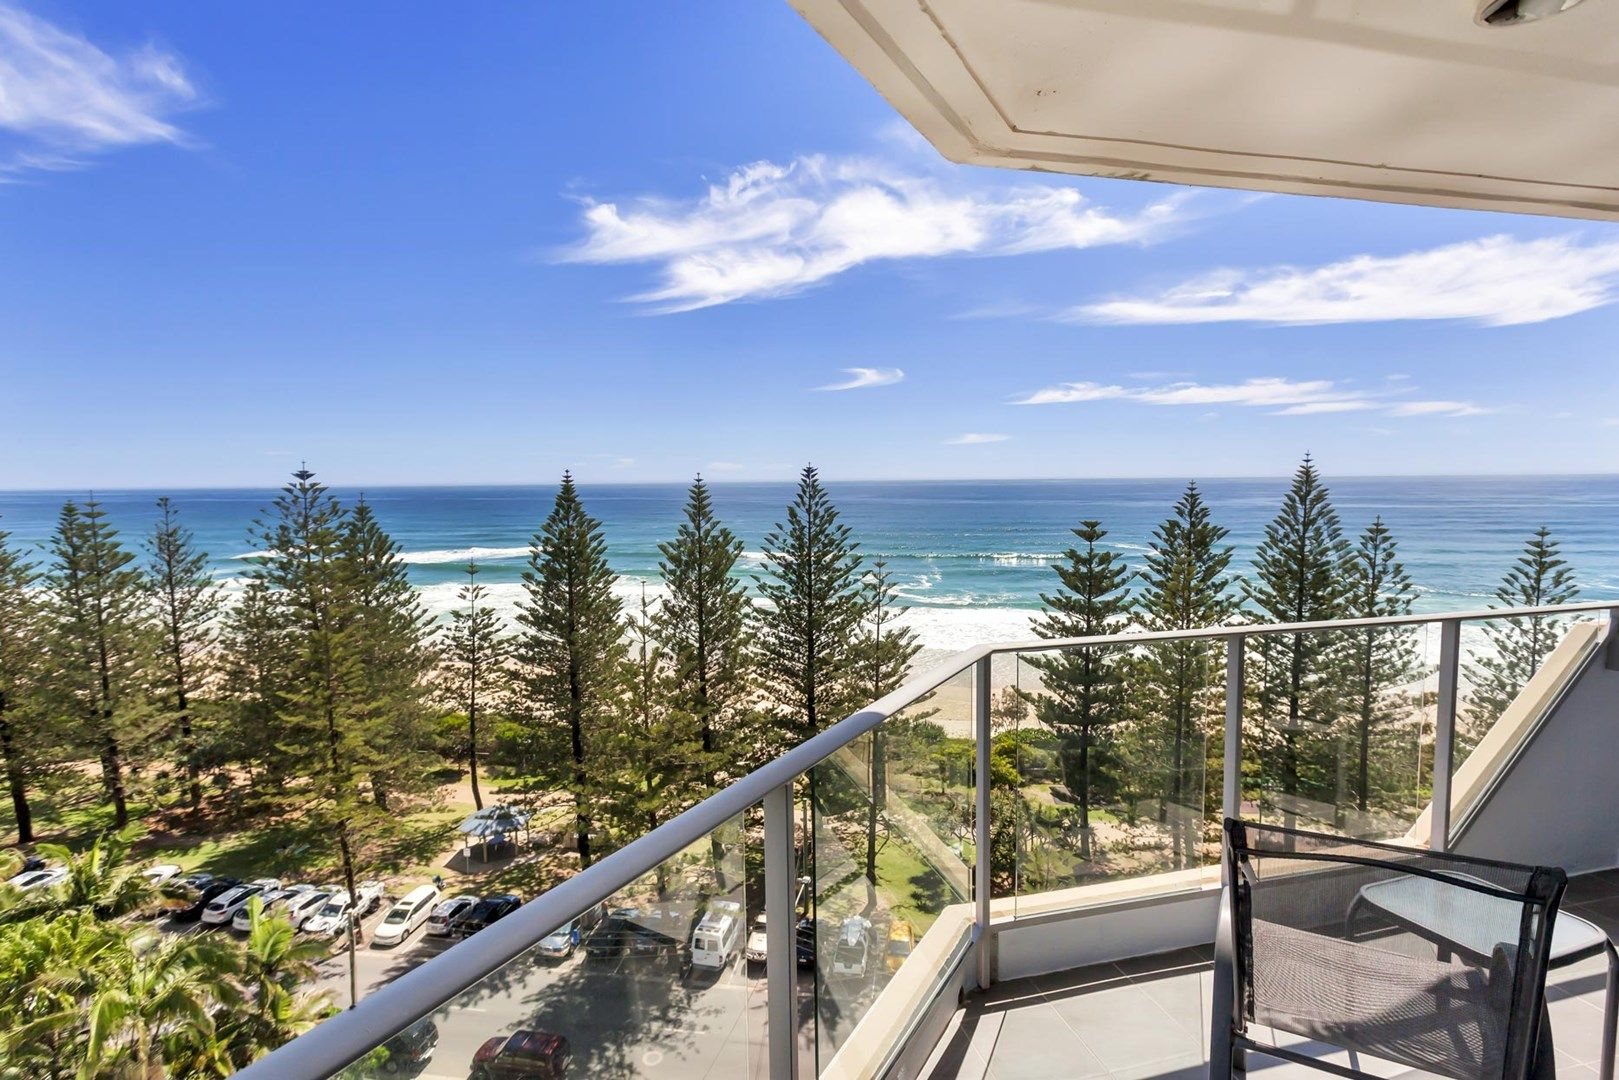 44/202 The Esplanade, Burleigh Heads QLD 4220, Image 0